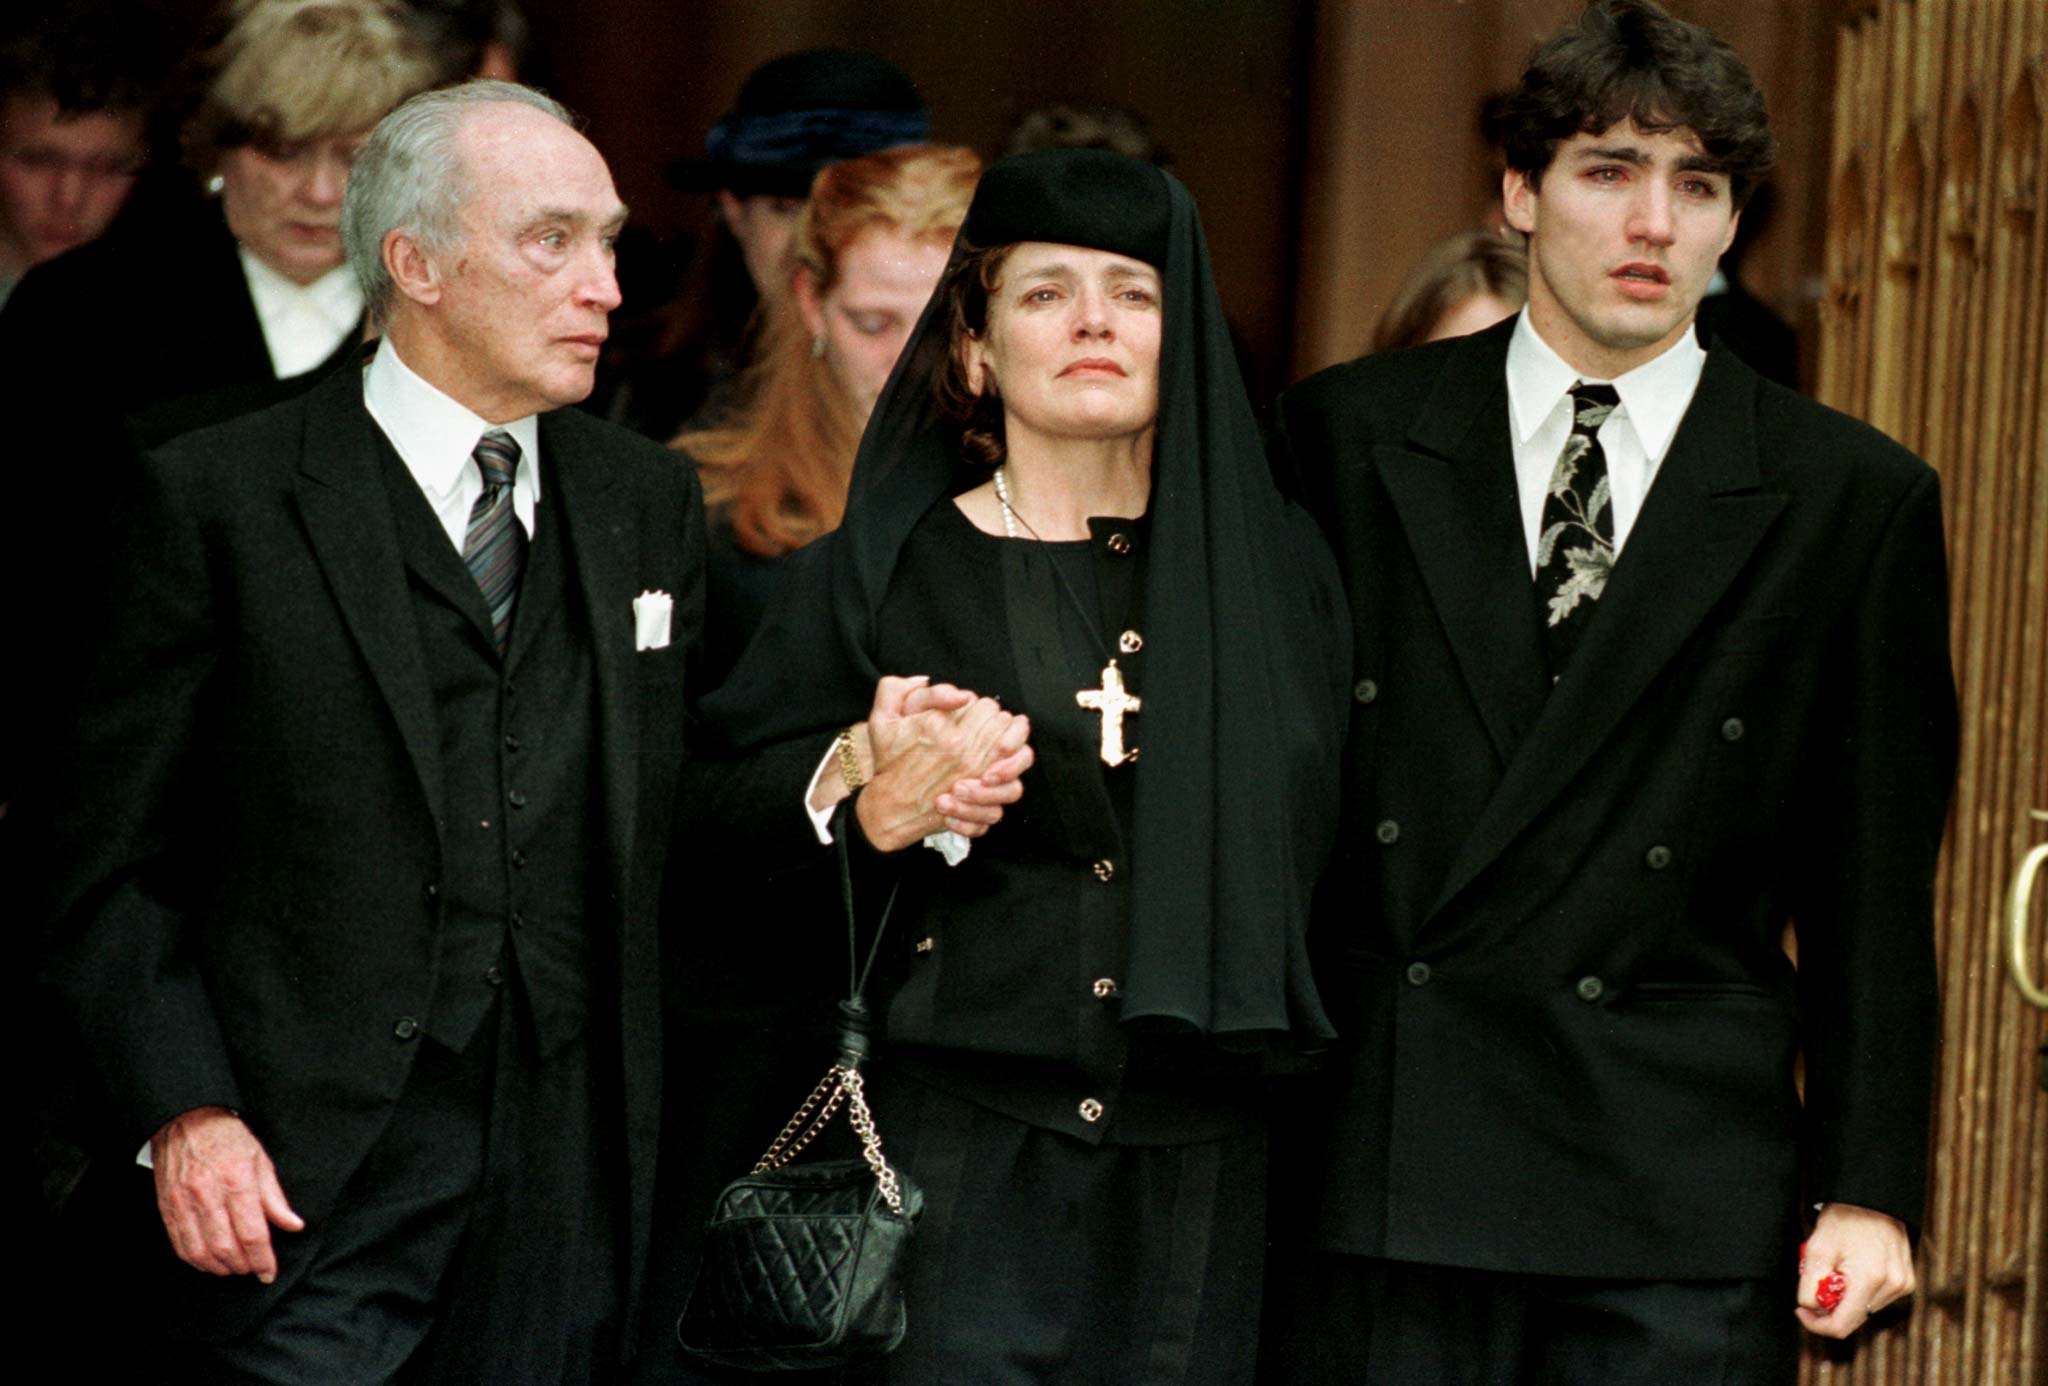 Pierre Trudeau, Margaret Kemper and Justin Trudeau after attending a memorial to Michel Trudeau in Montreal, in 1998.